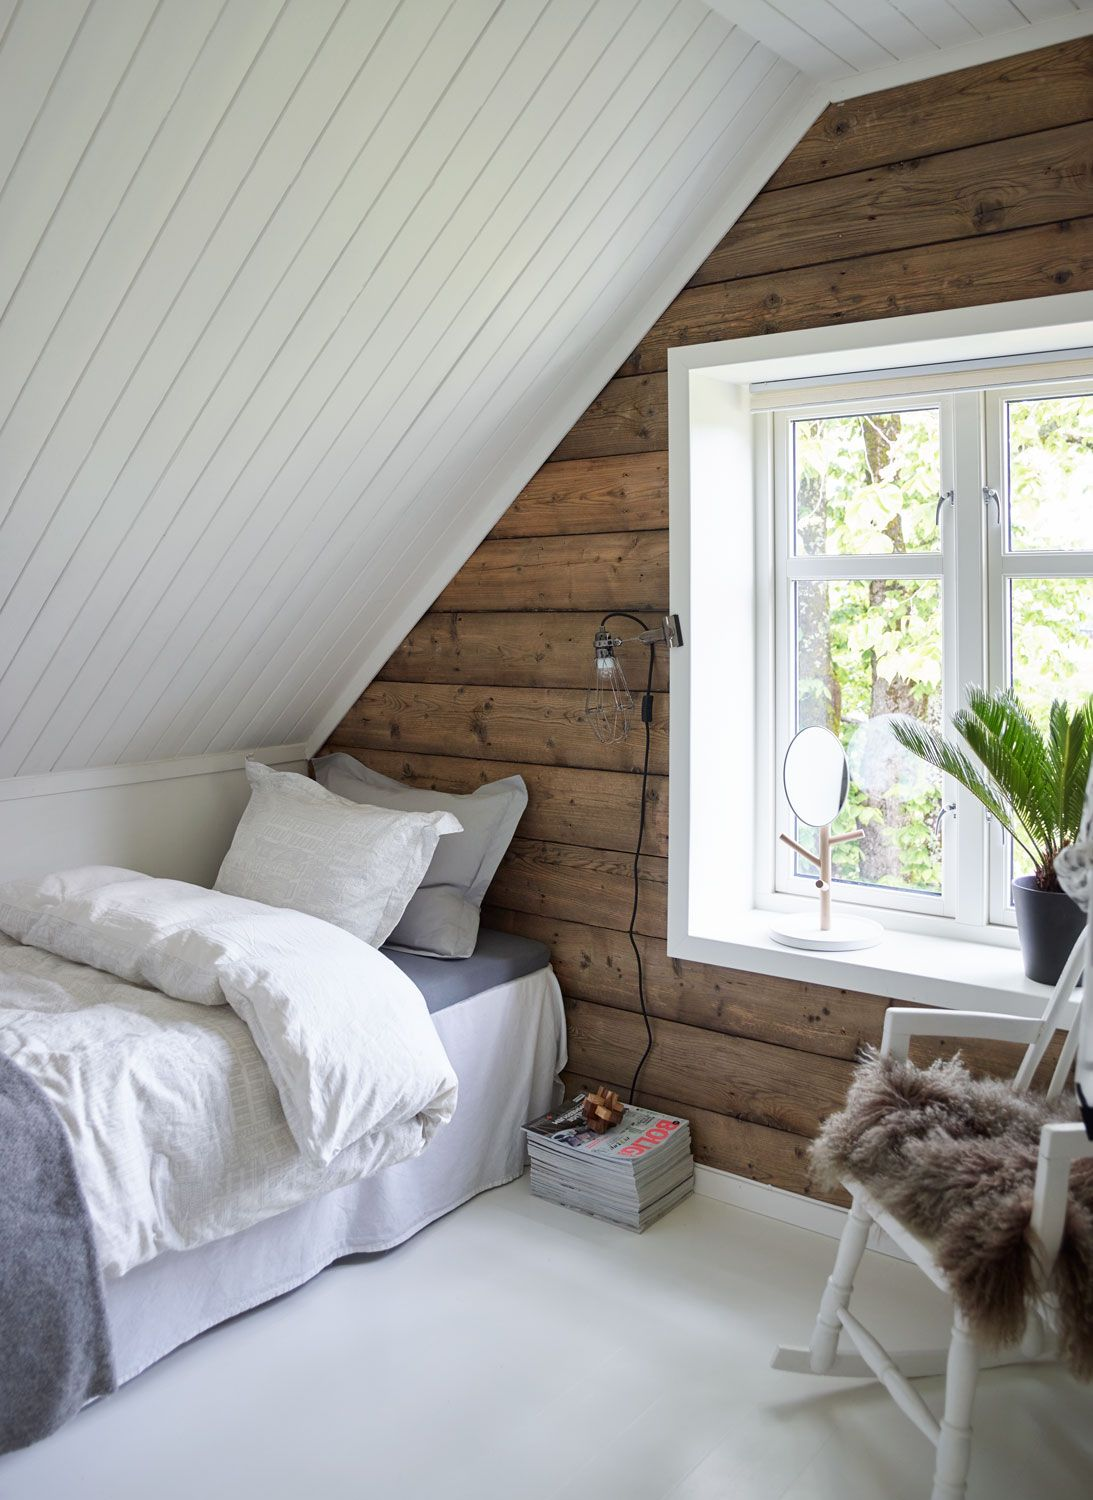 Attic bedroom design and d cor tips bedroom pinterest for Small loft decor